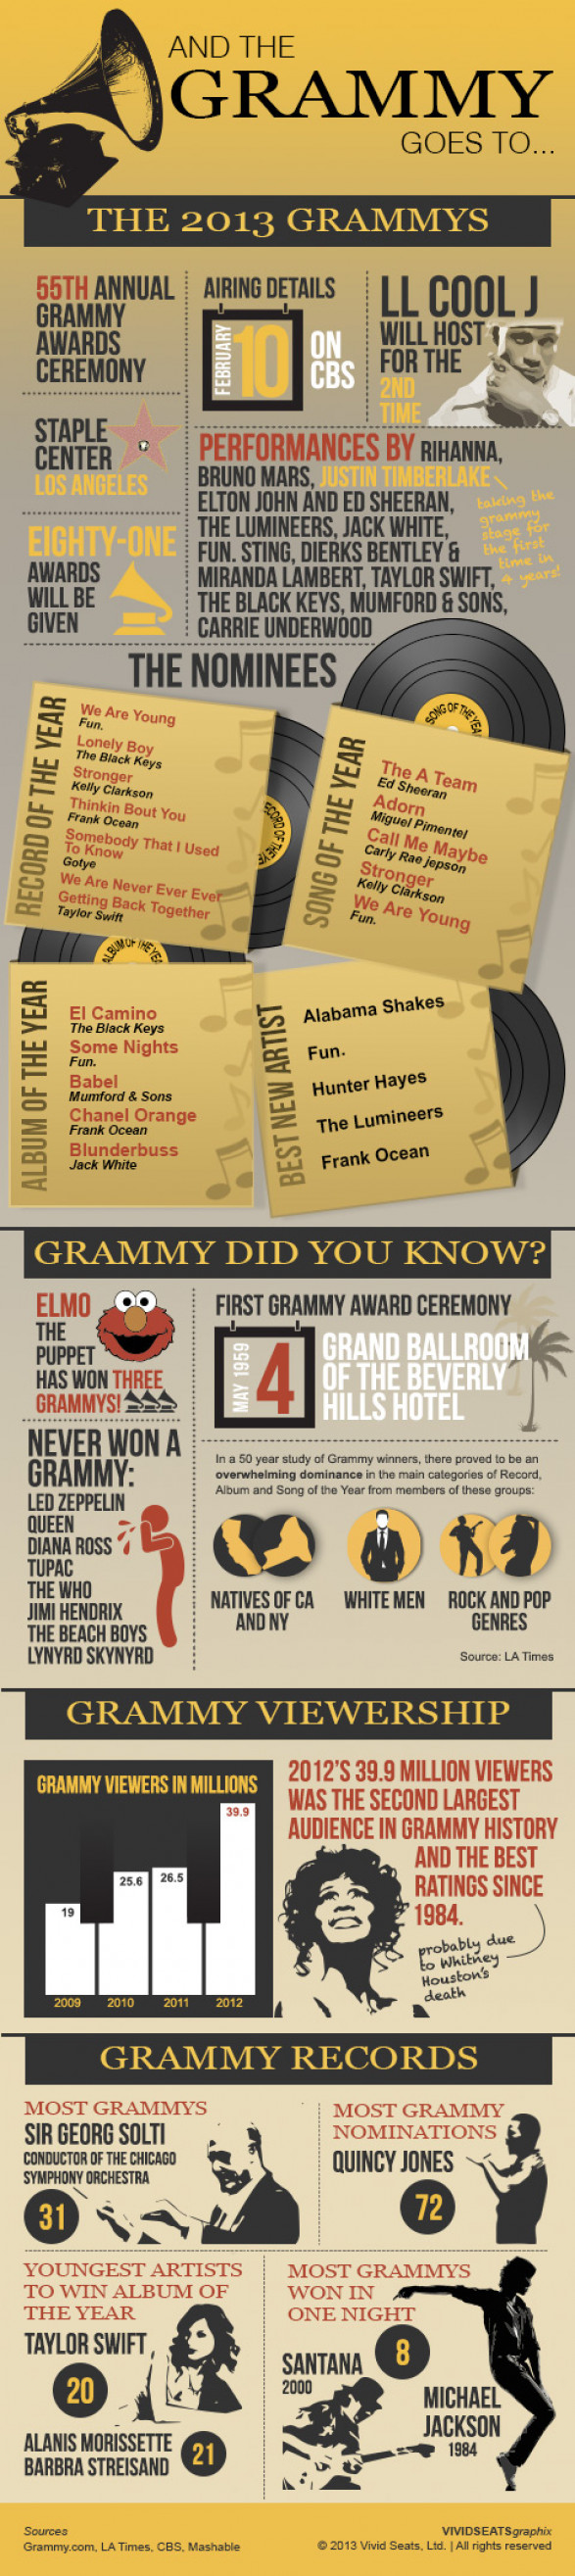 And the Grammy Goes To....